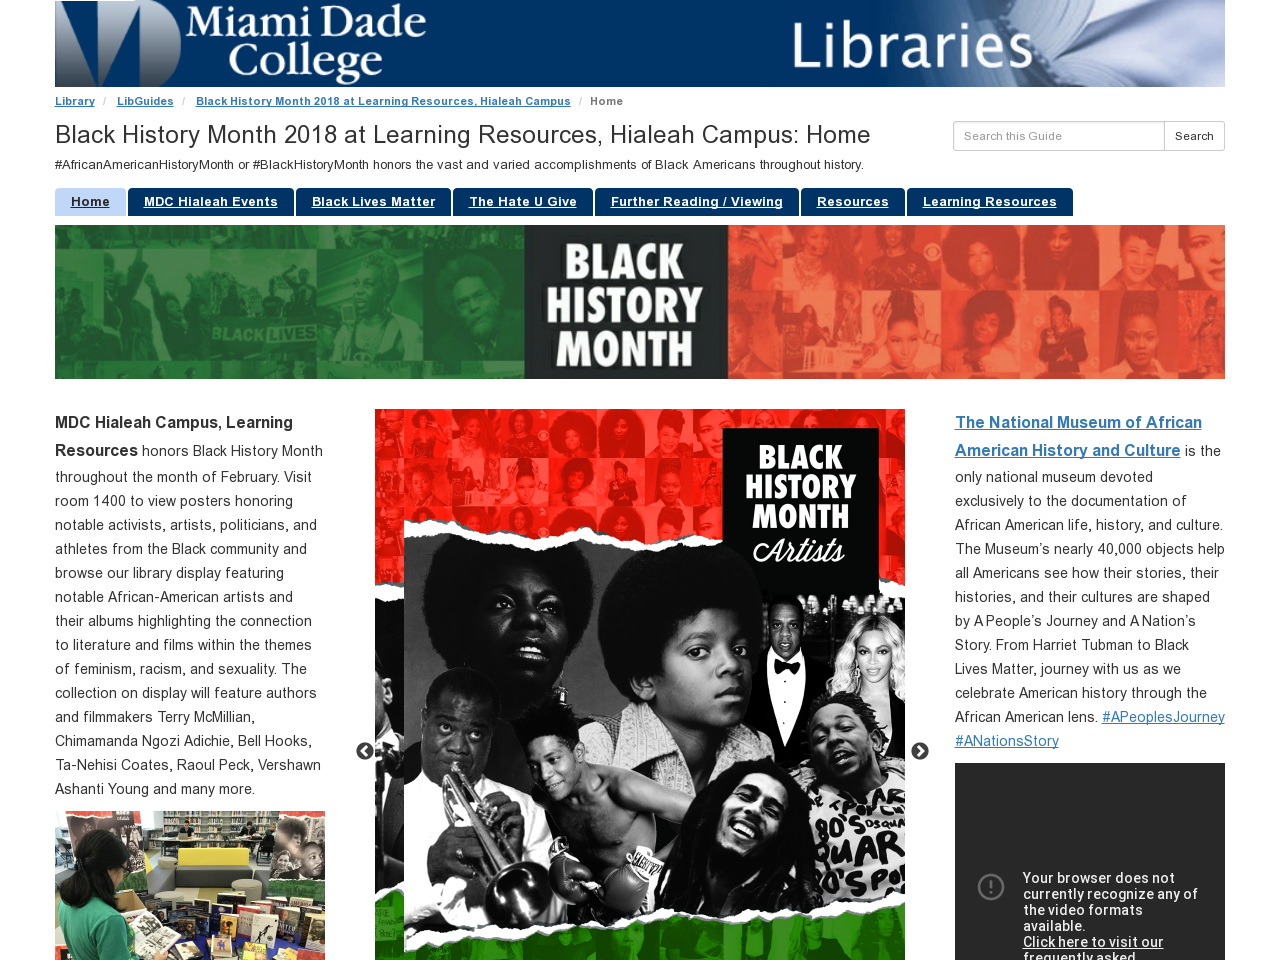 Black History Month 2018 LibGuide